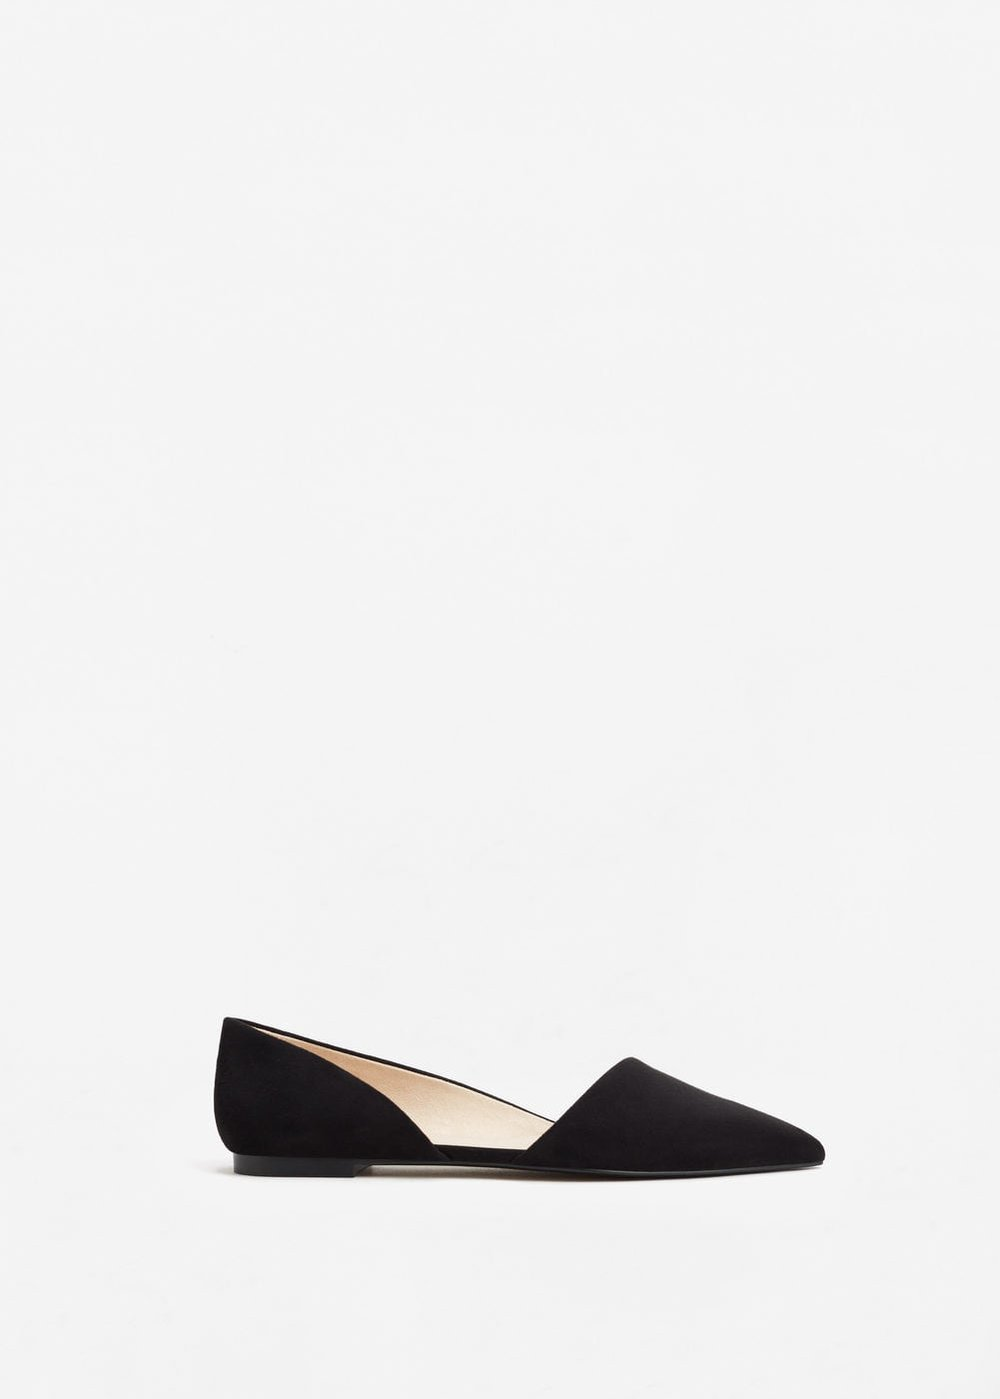 Mango Flat Shoes $39.99